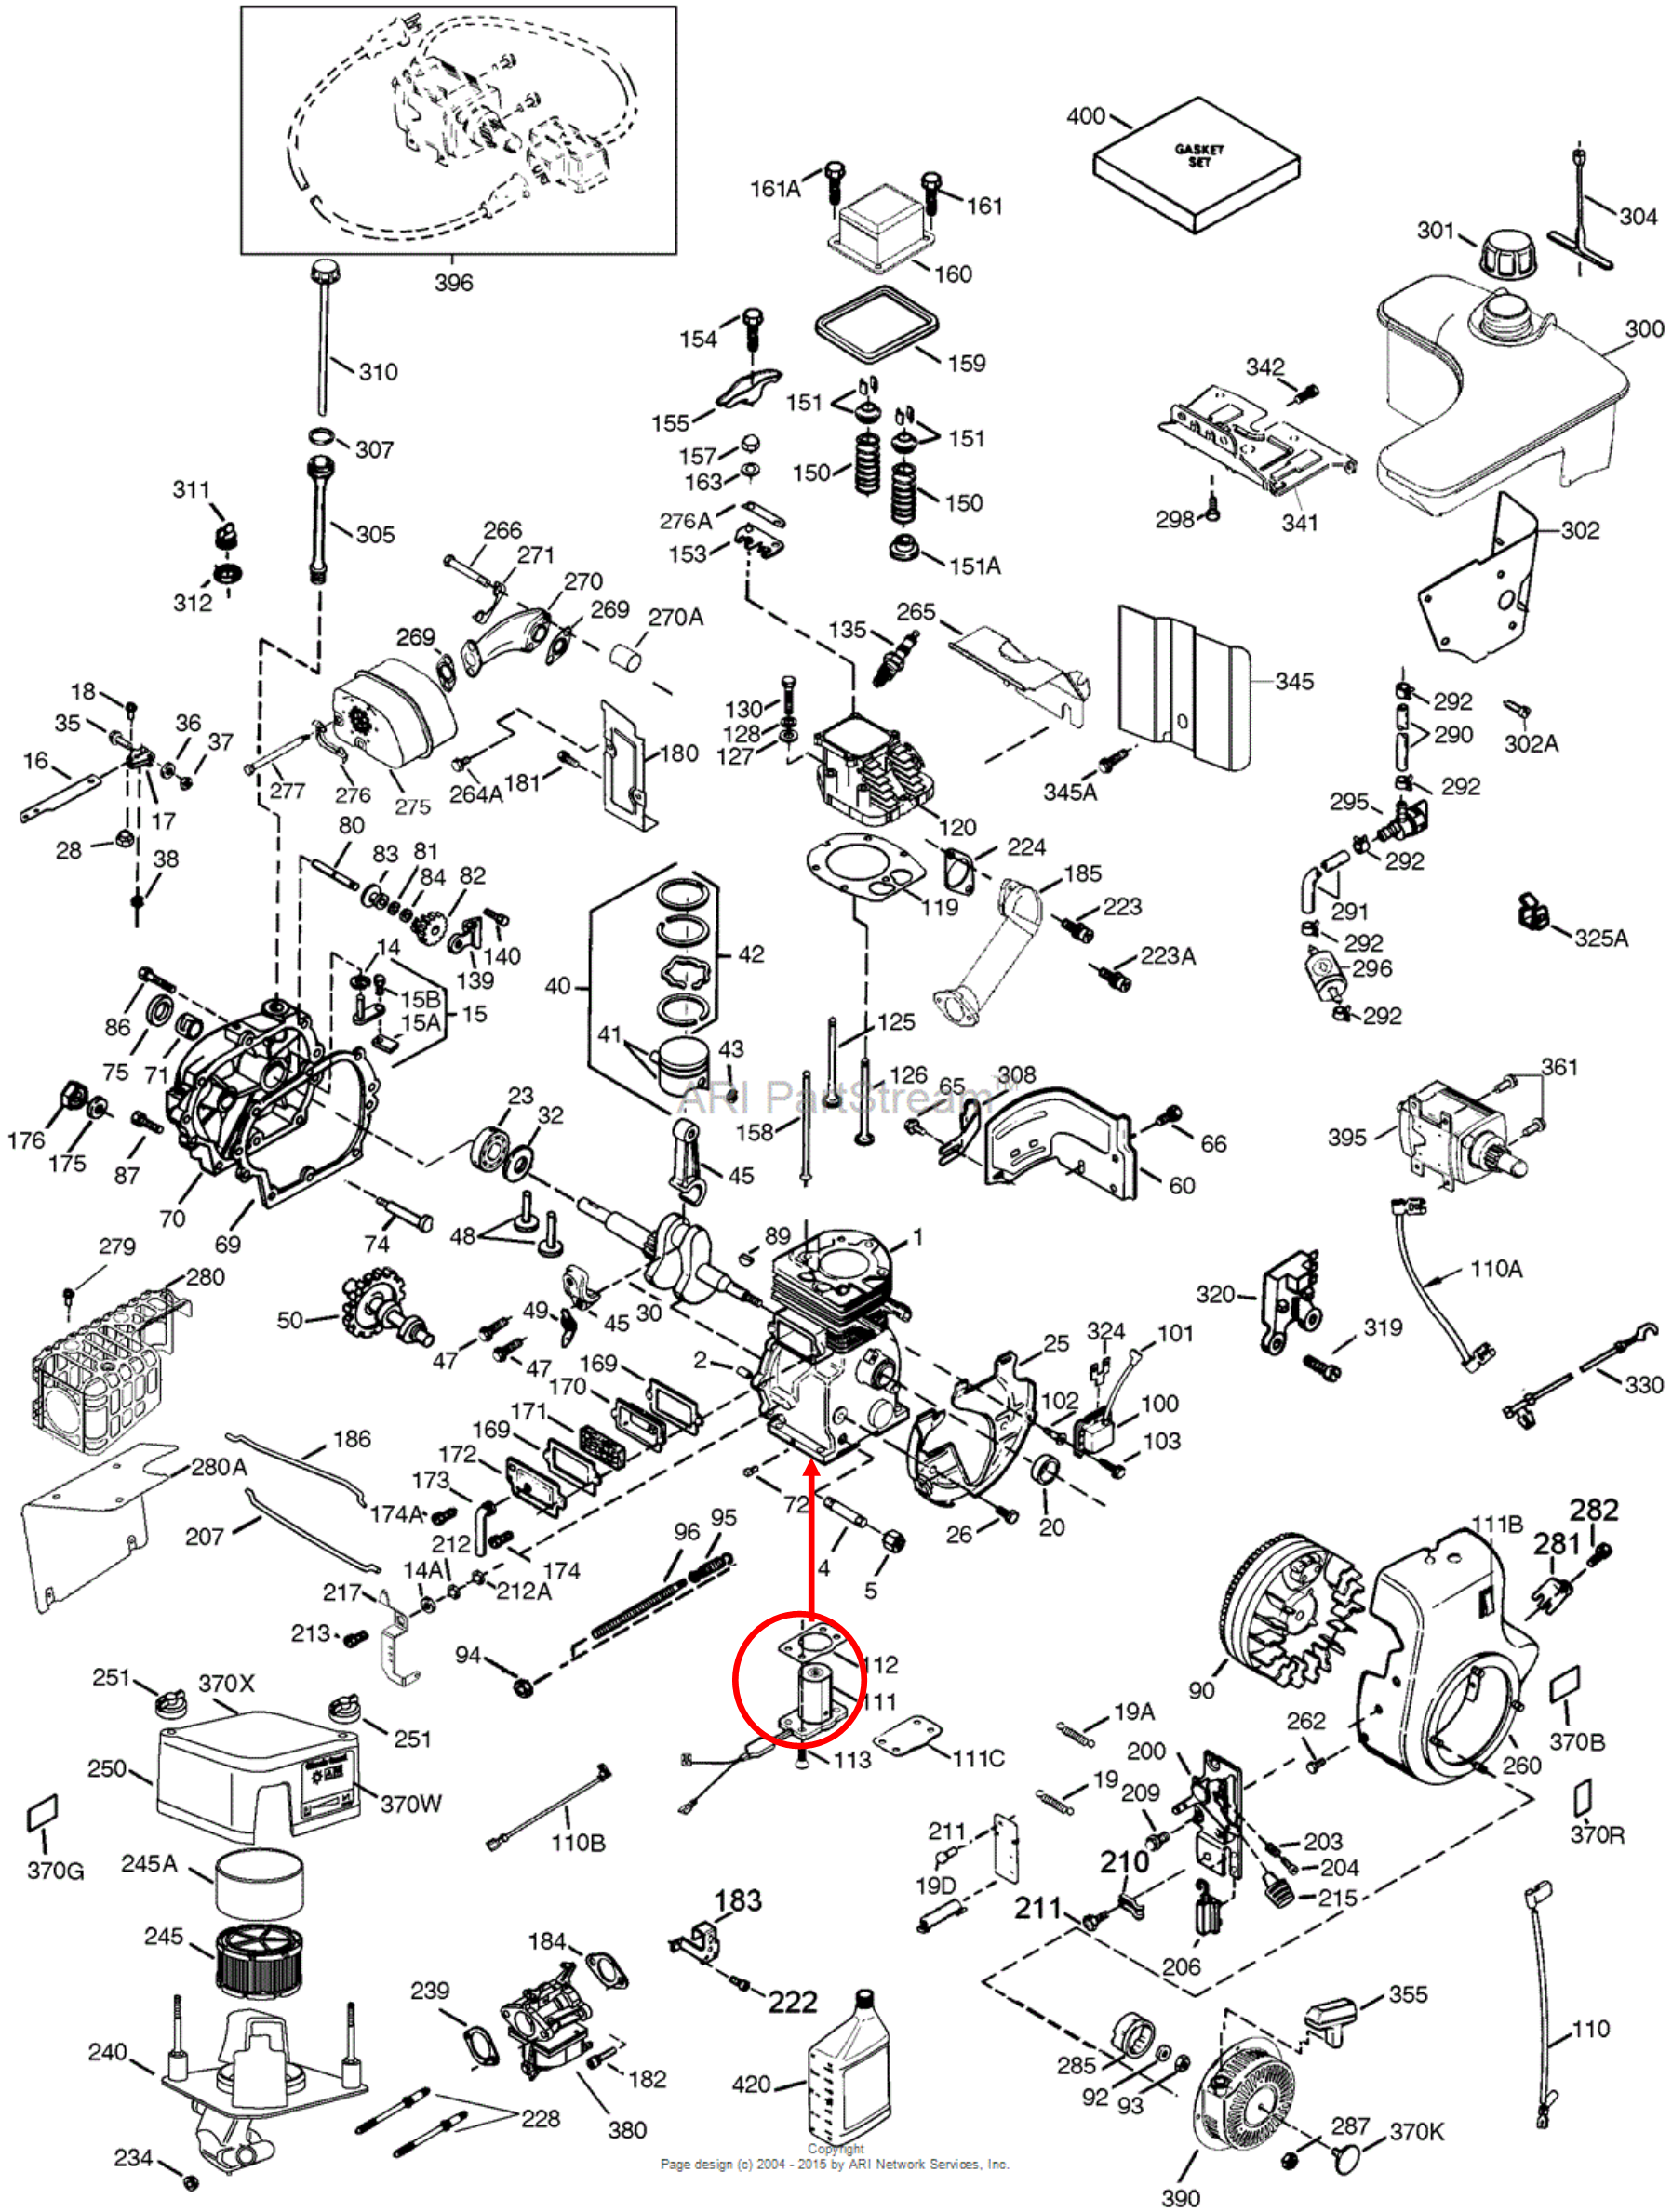 Delco Light Plant Wiring Diagram 32 Images Tecumseh 18497986883 Fc8489f902 O Powermate Genset 5500 6875 Model Pm0525300 17 W 11hp